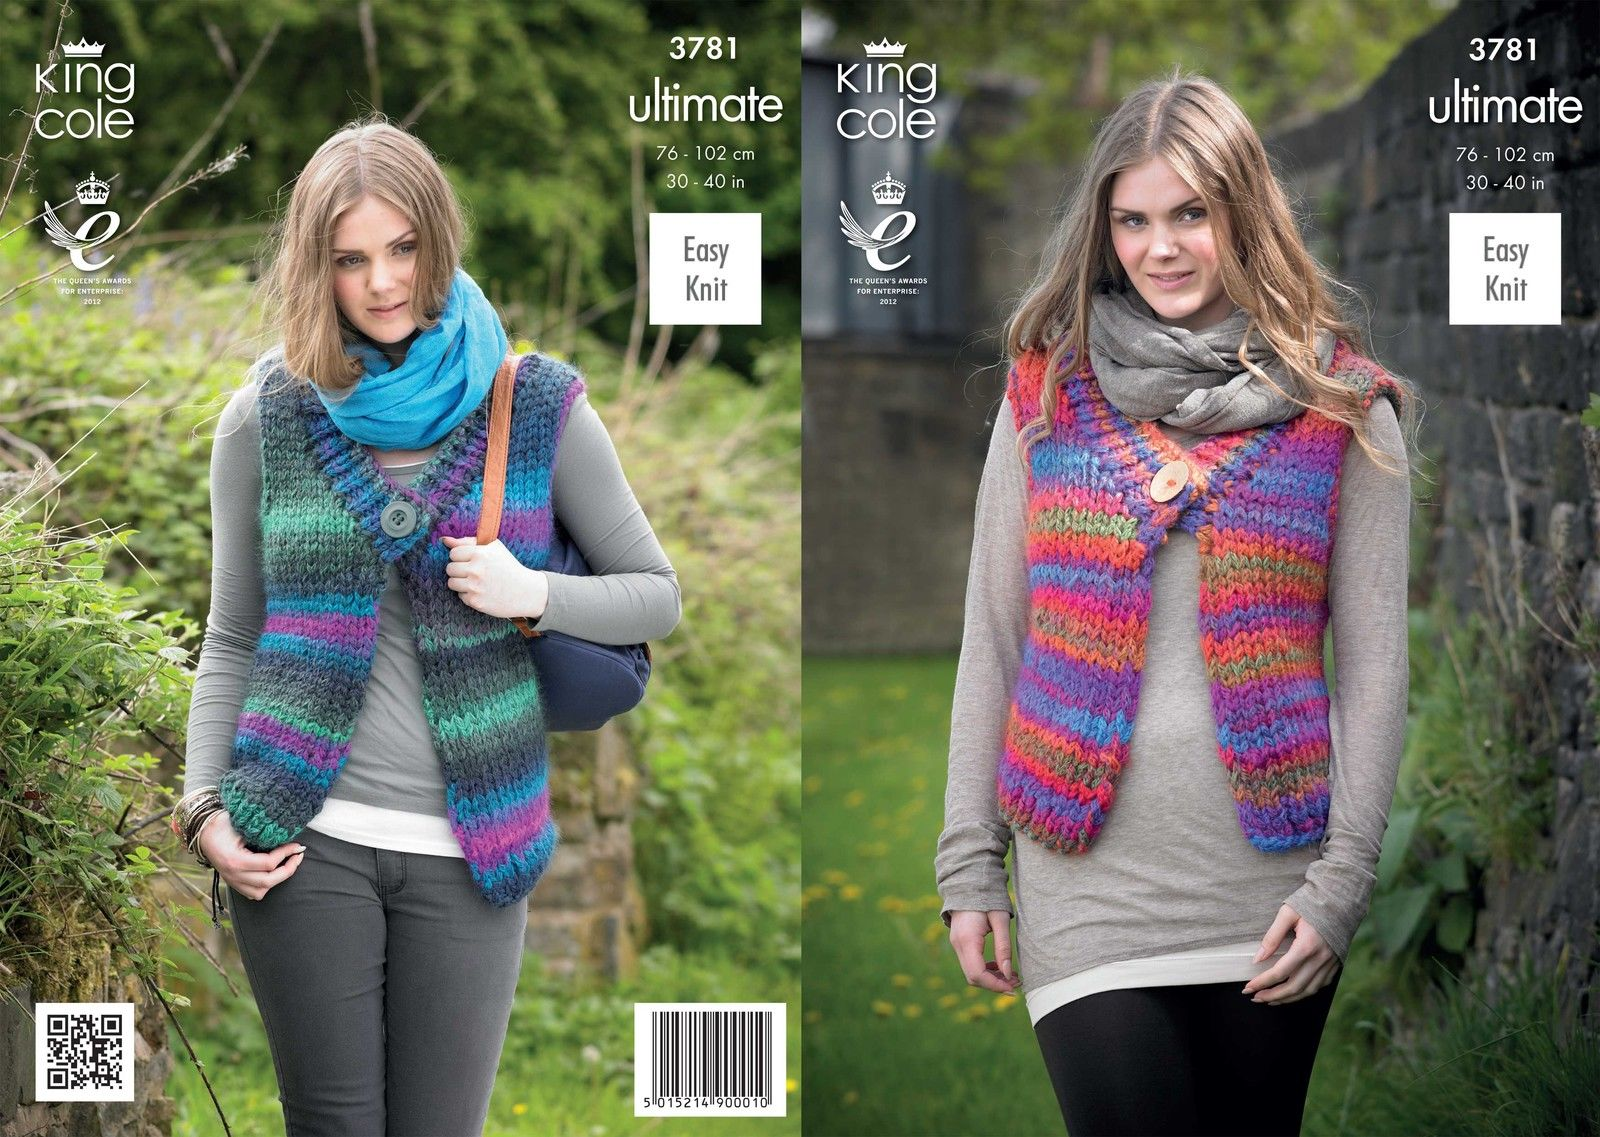 3781 - KING COLE ULTIMATE EASY KNIT SUPER CHUNKY WAISTCOAT KNITTING ...